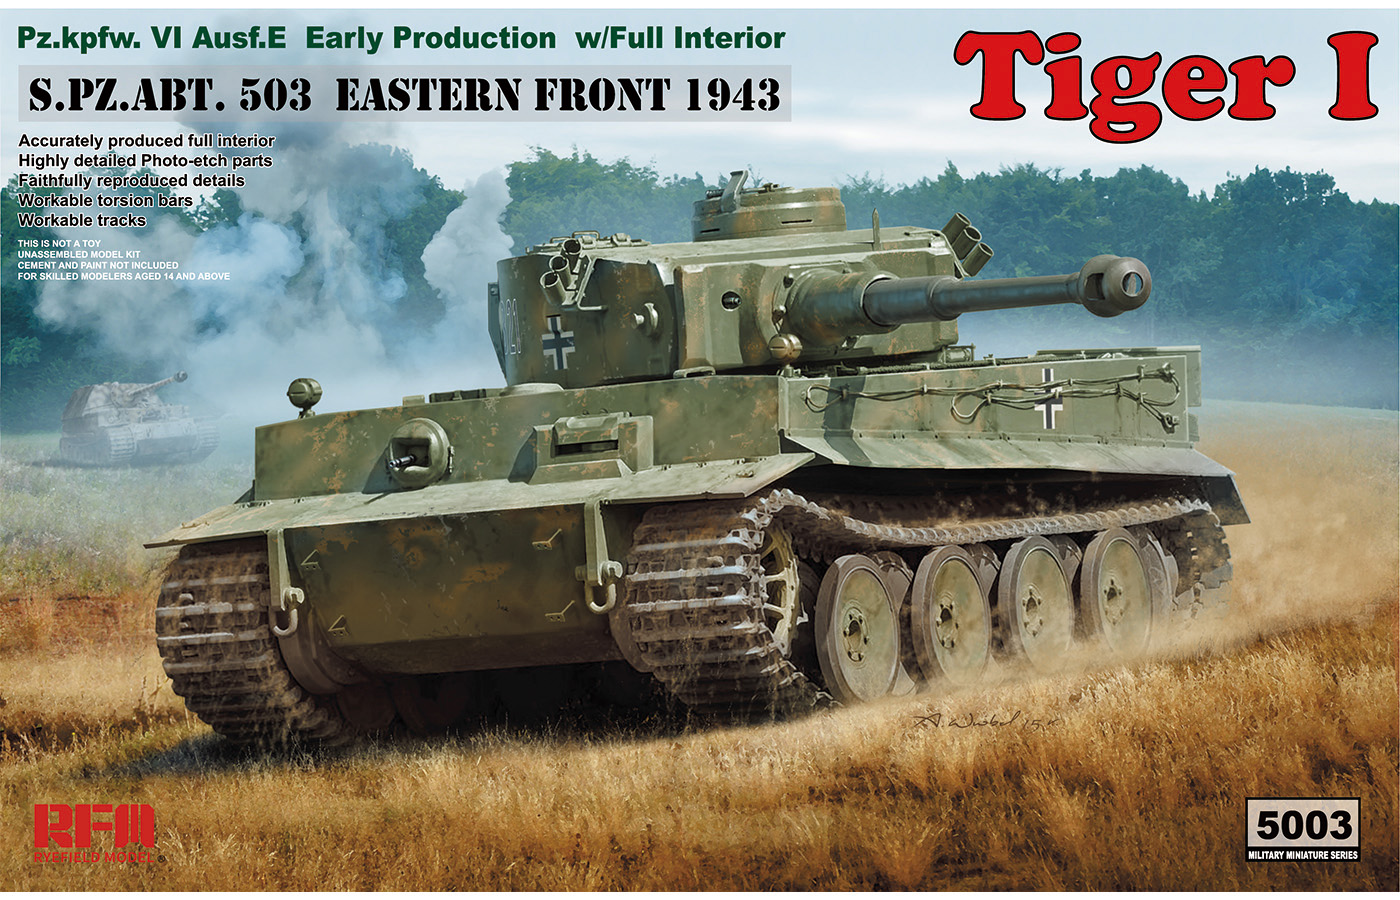 RM-5003 Tiger I Early Production With full interior